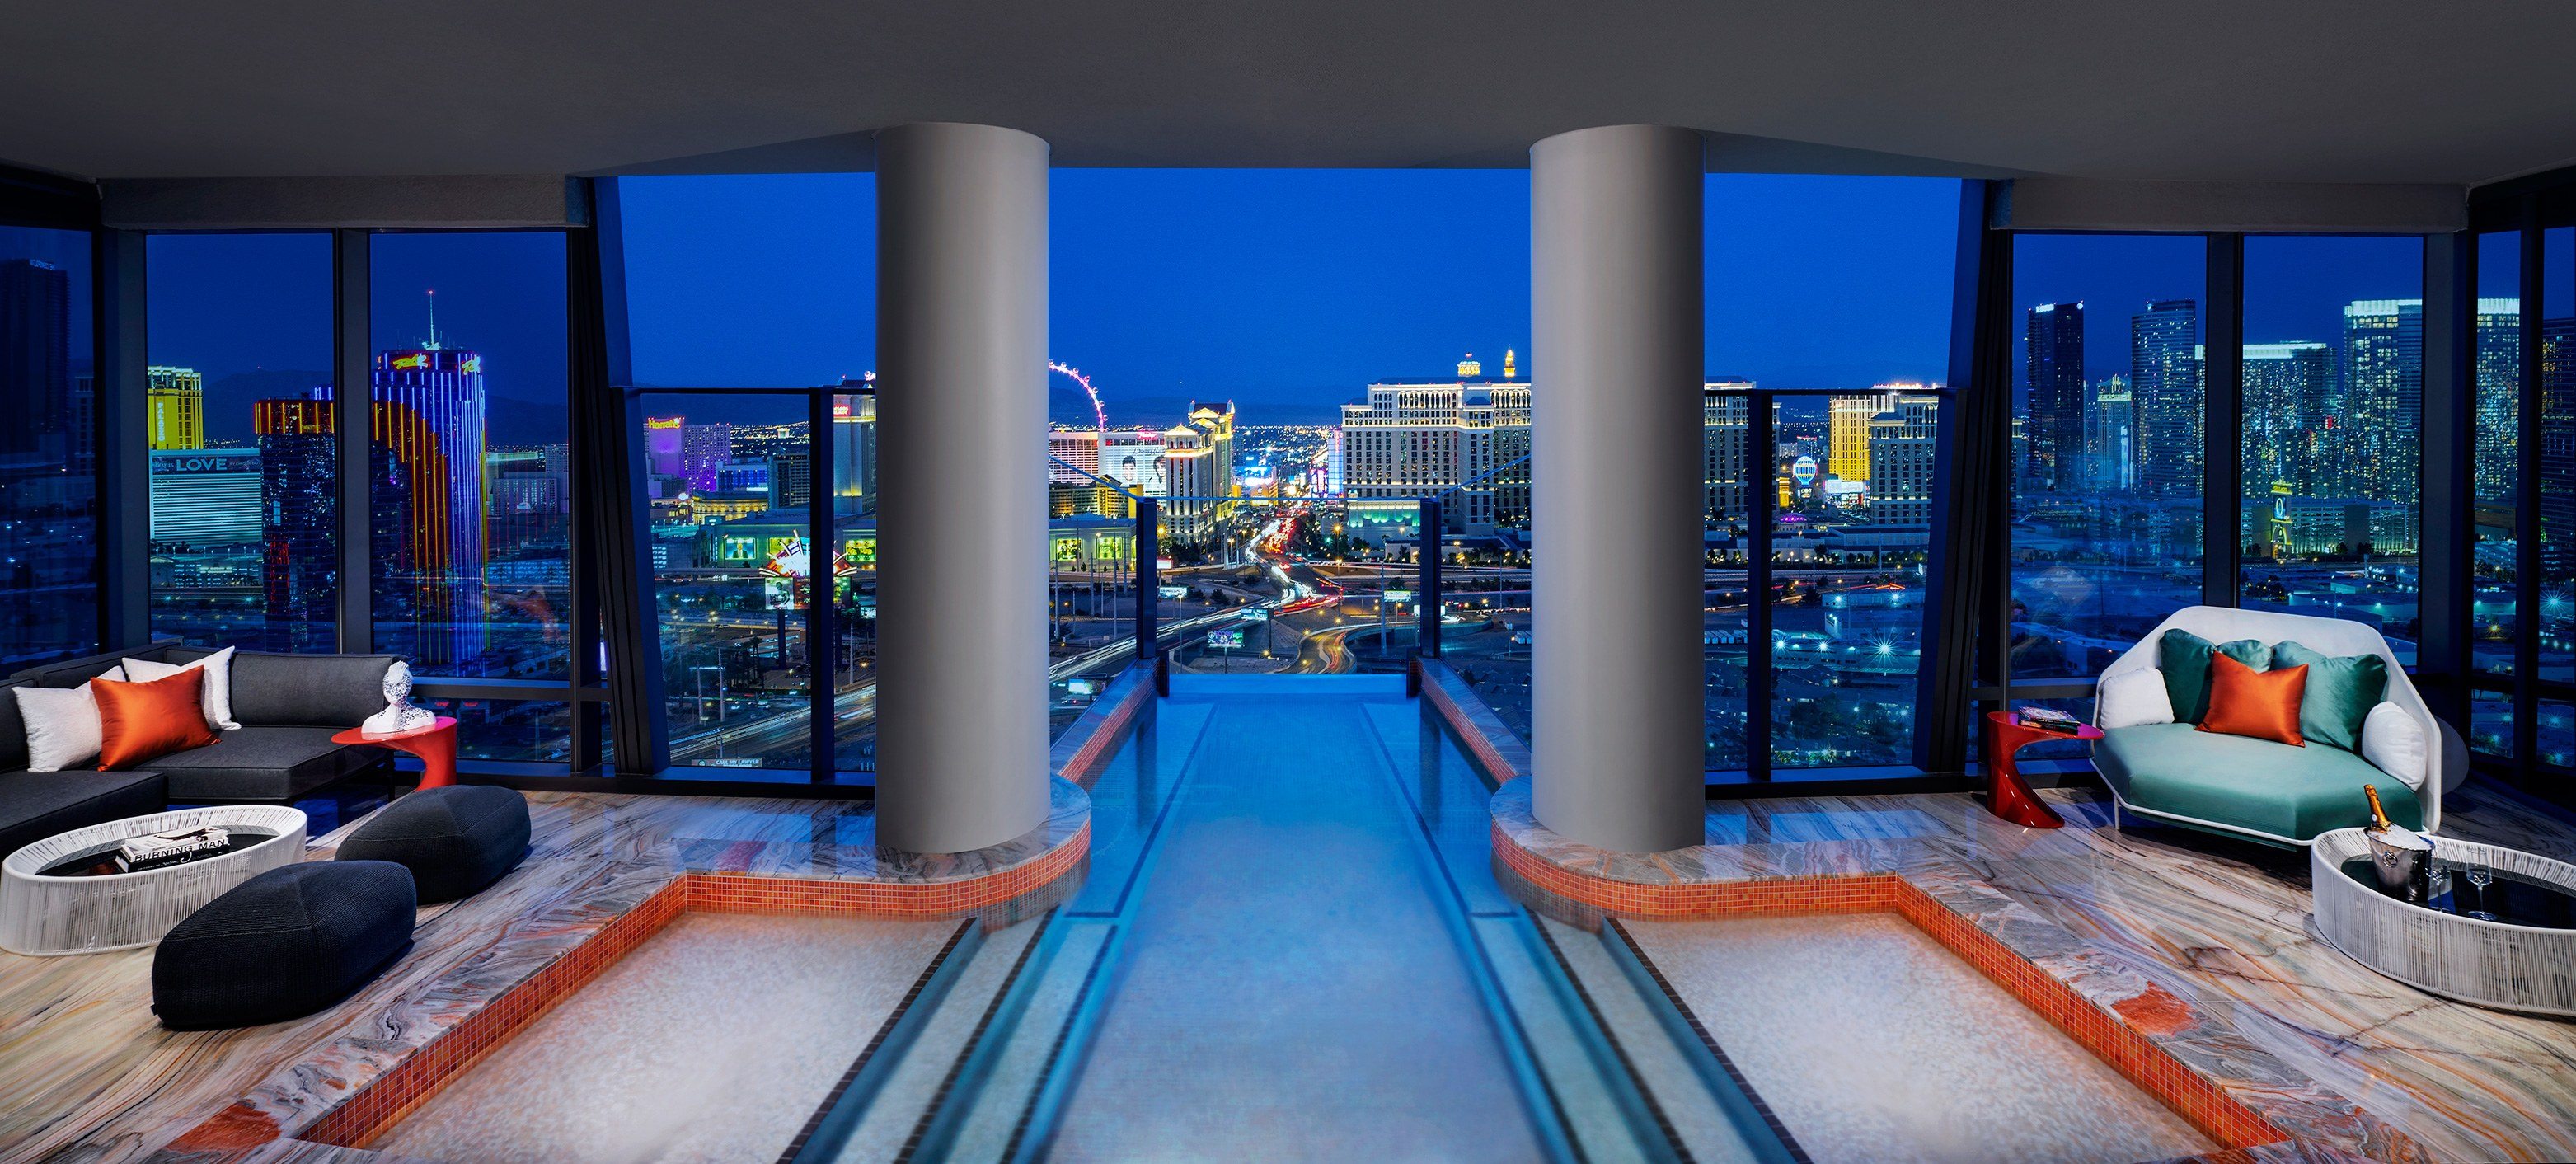 Sky Villa, Palms Casino Resort, Las Vegas